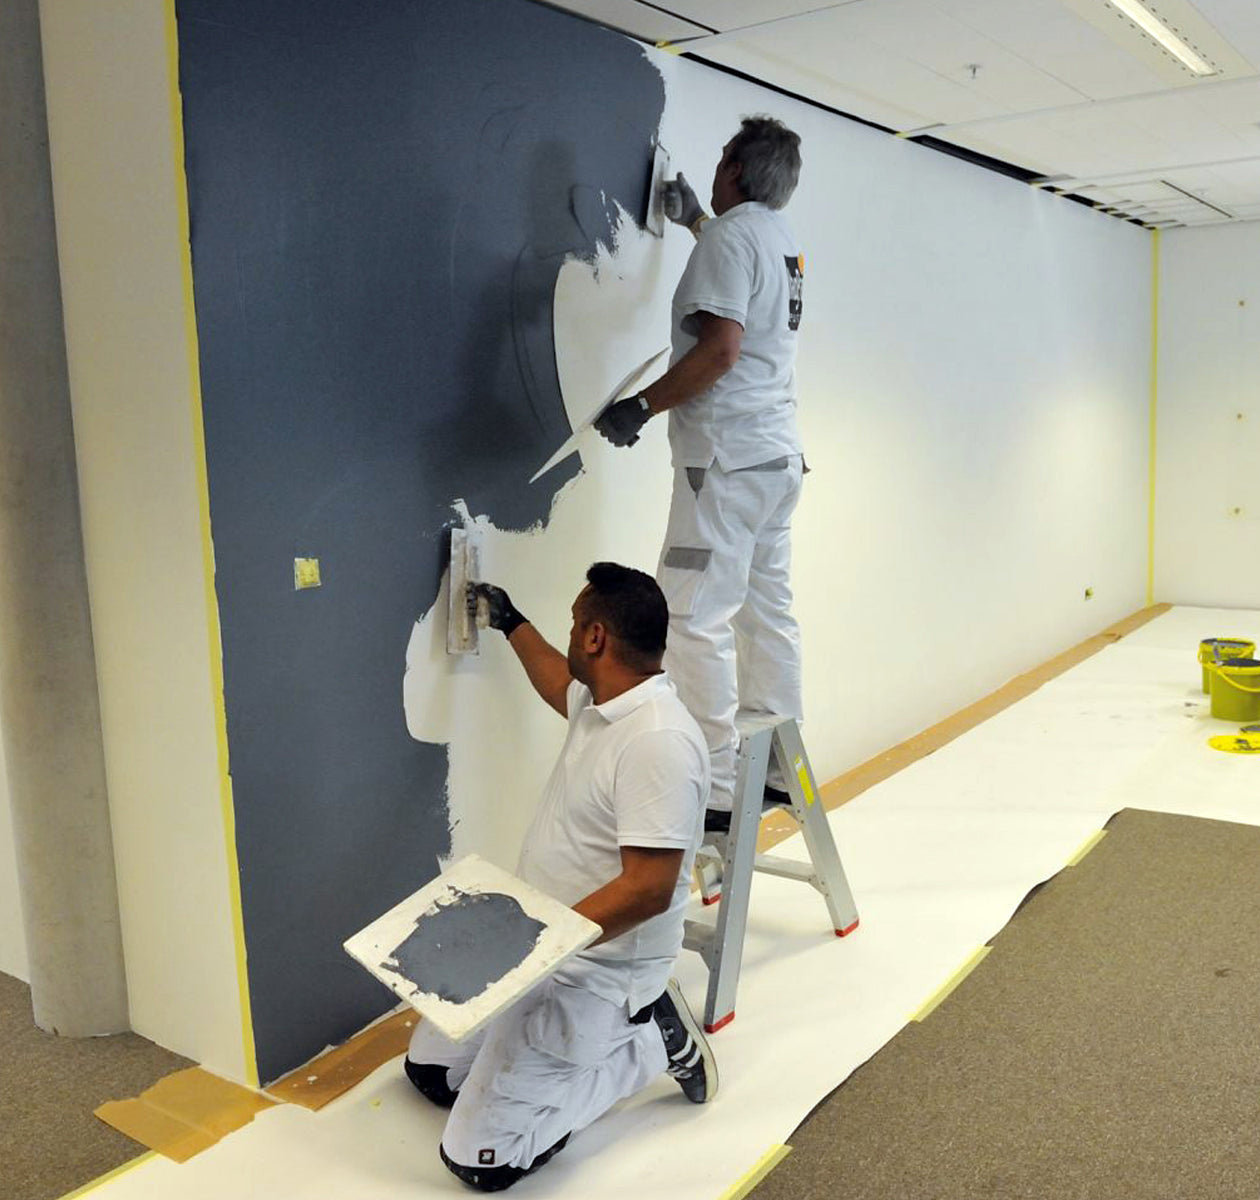 Professional installation of writable, magnetic and projection surfaces